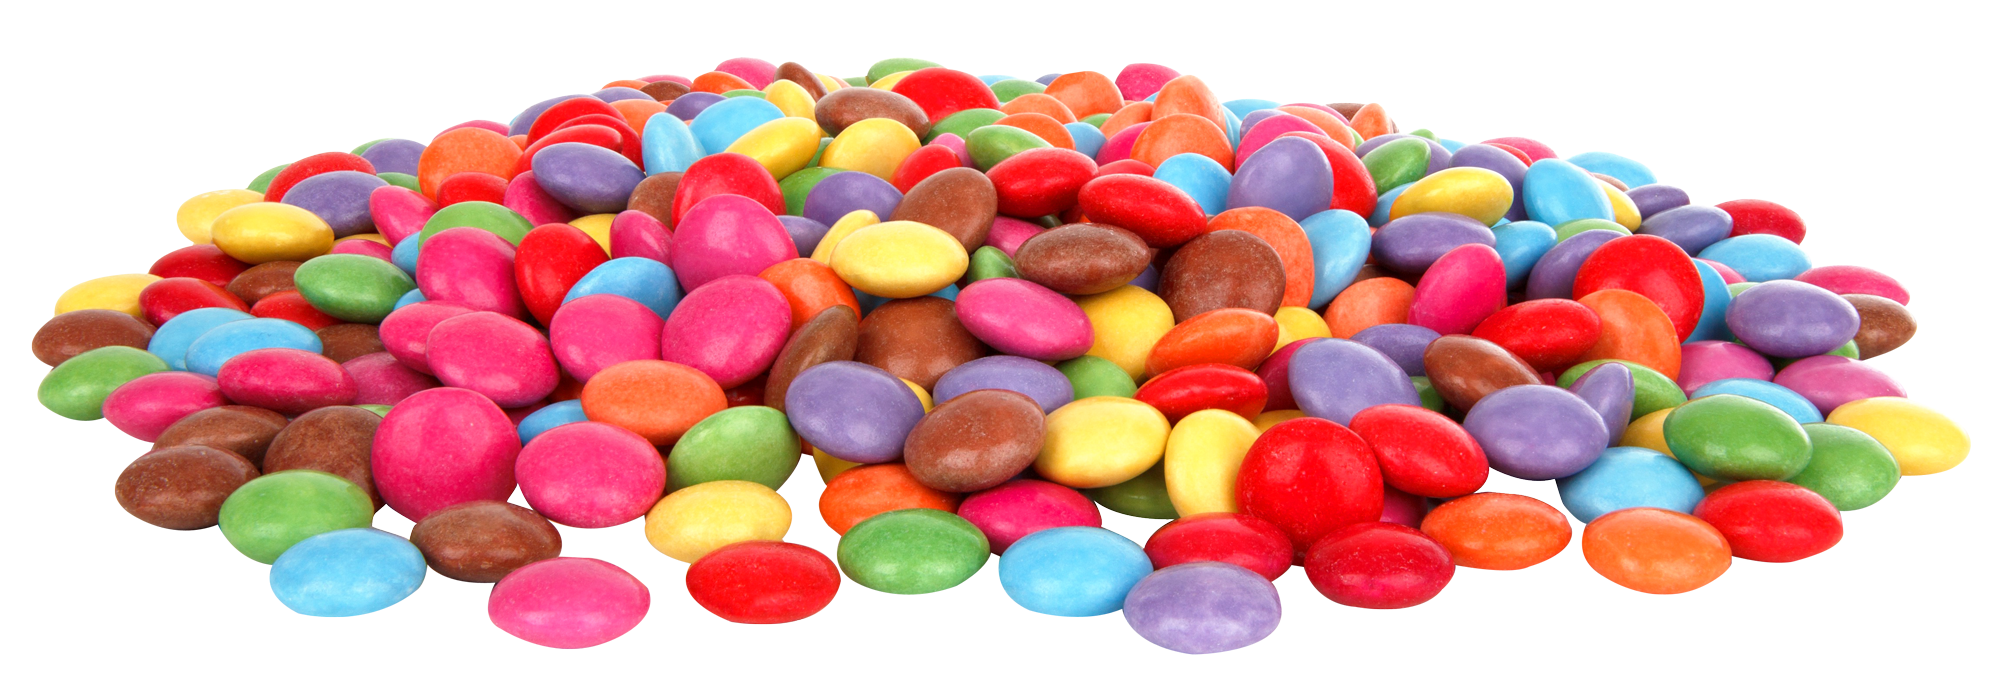 Candy PNG - 24248